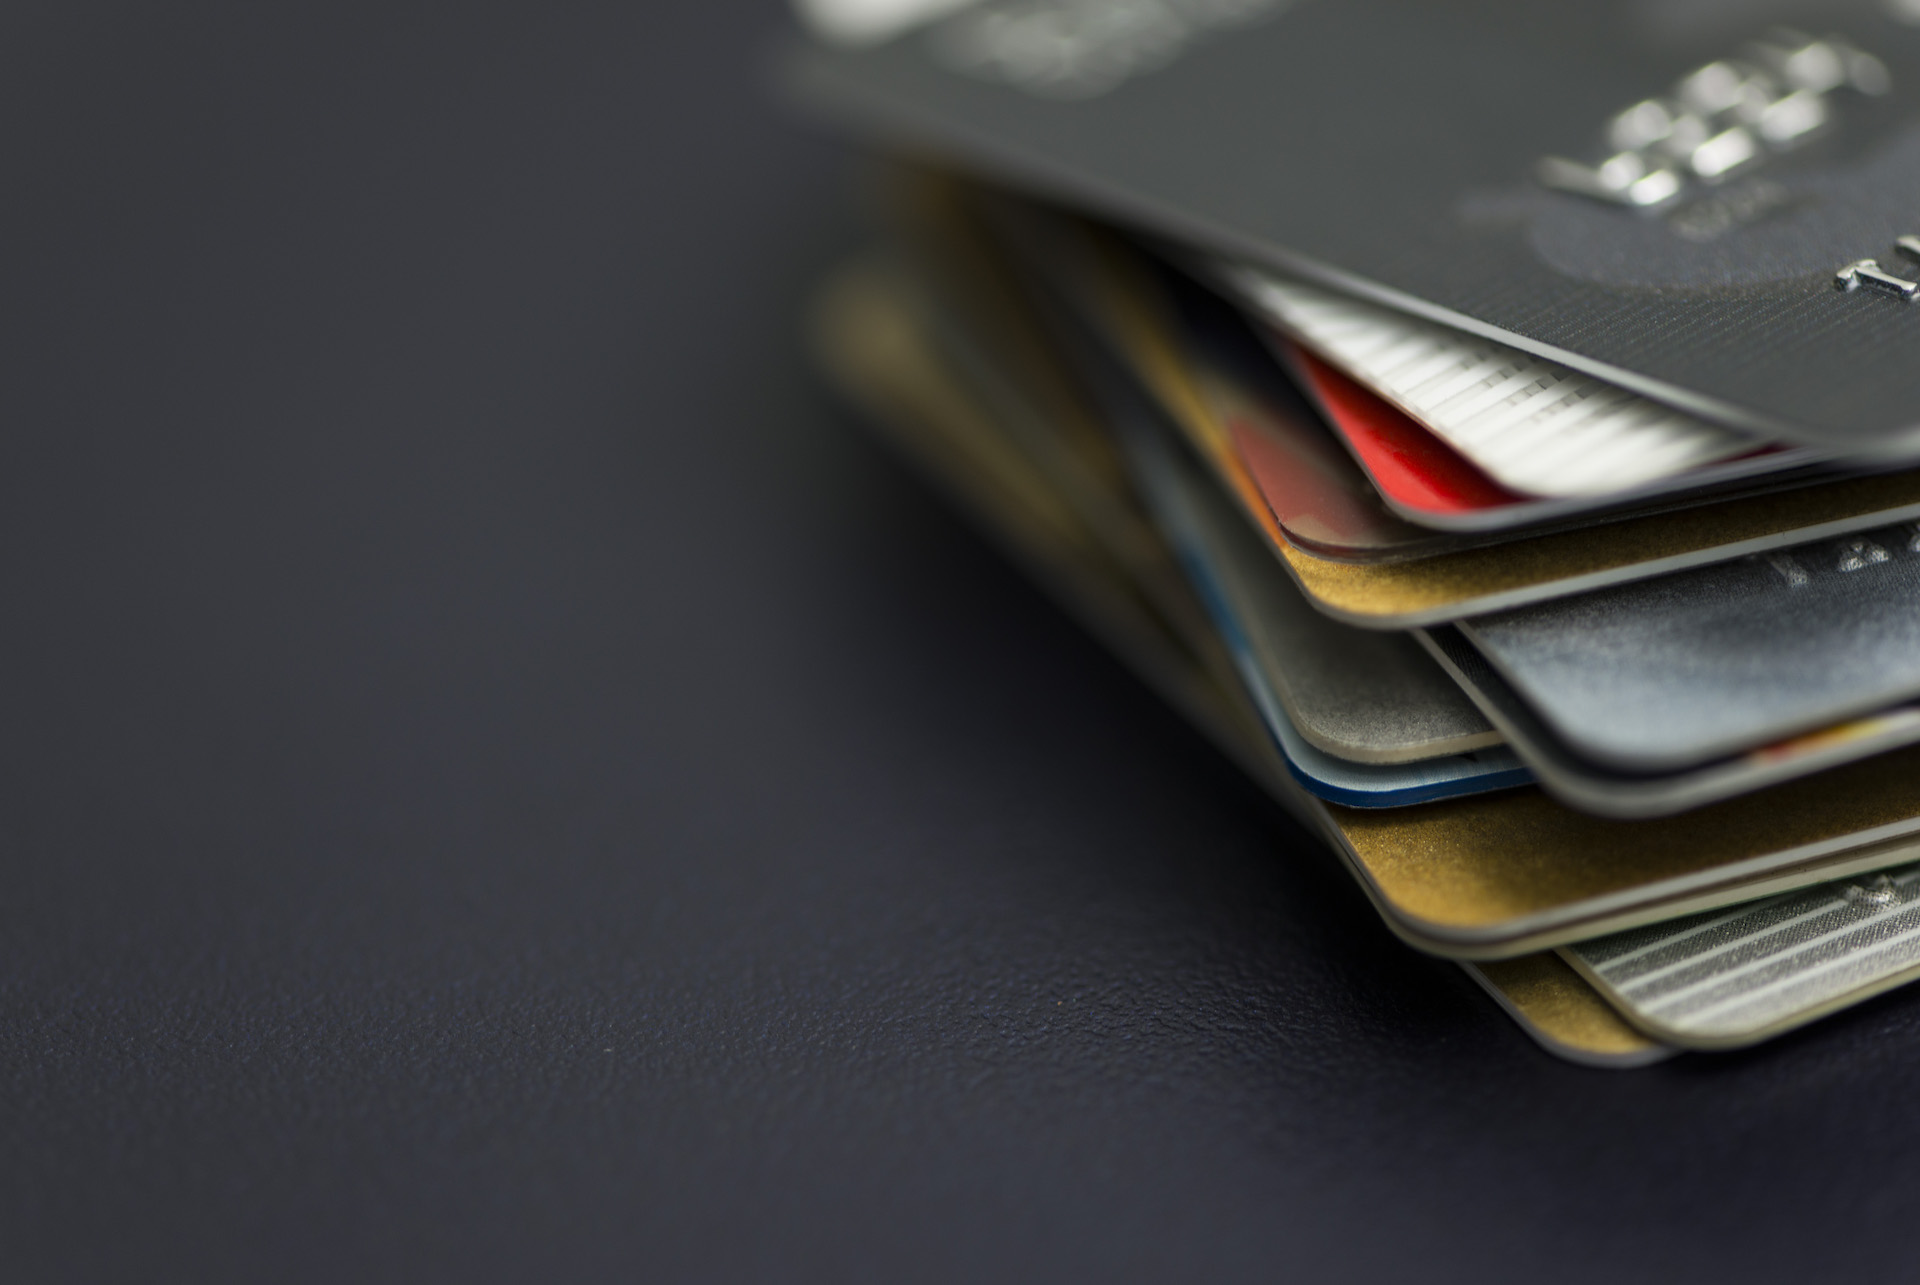 Hacked Pakistani bank cards for sale on the dark web again